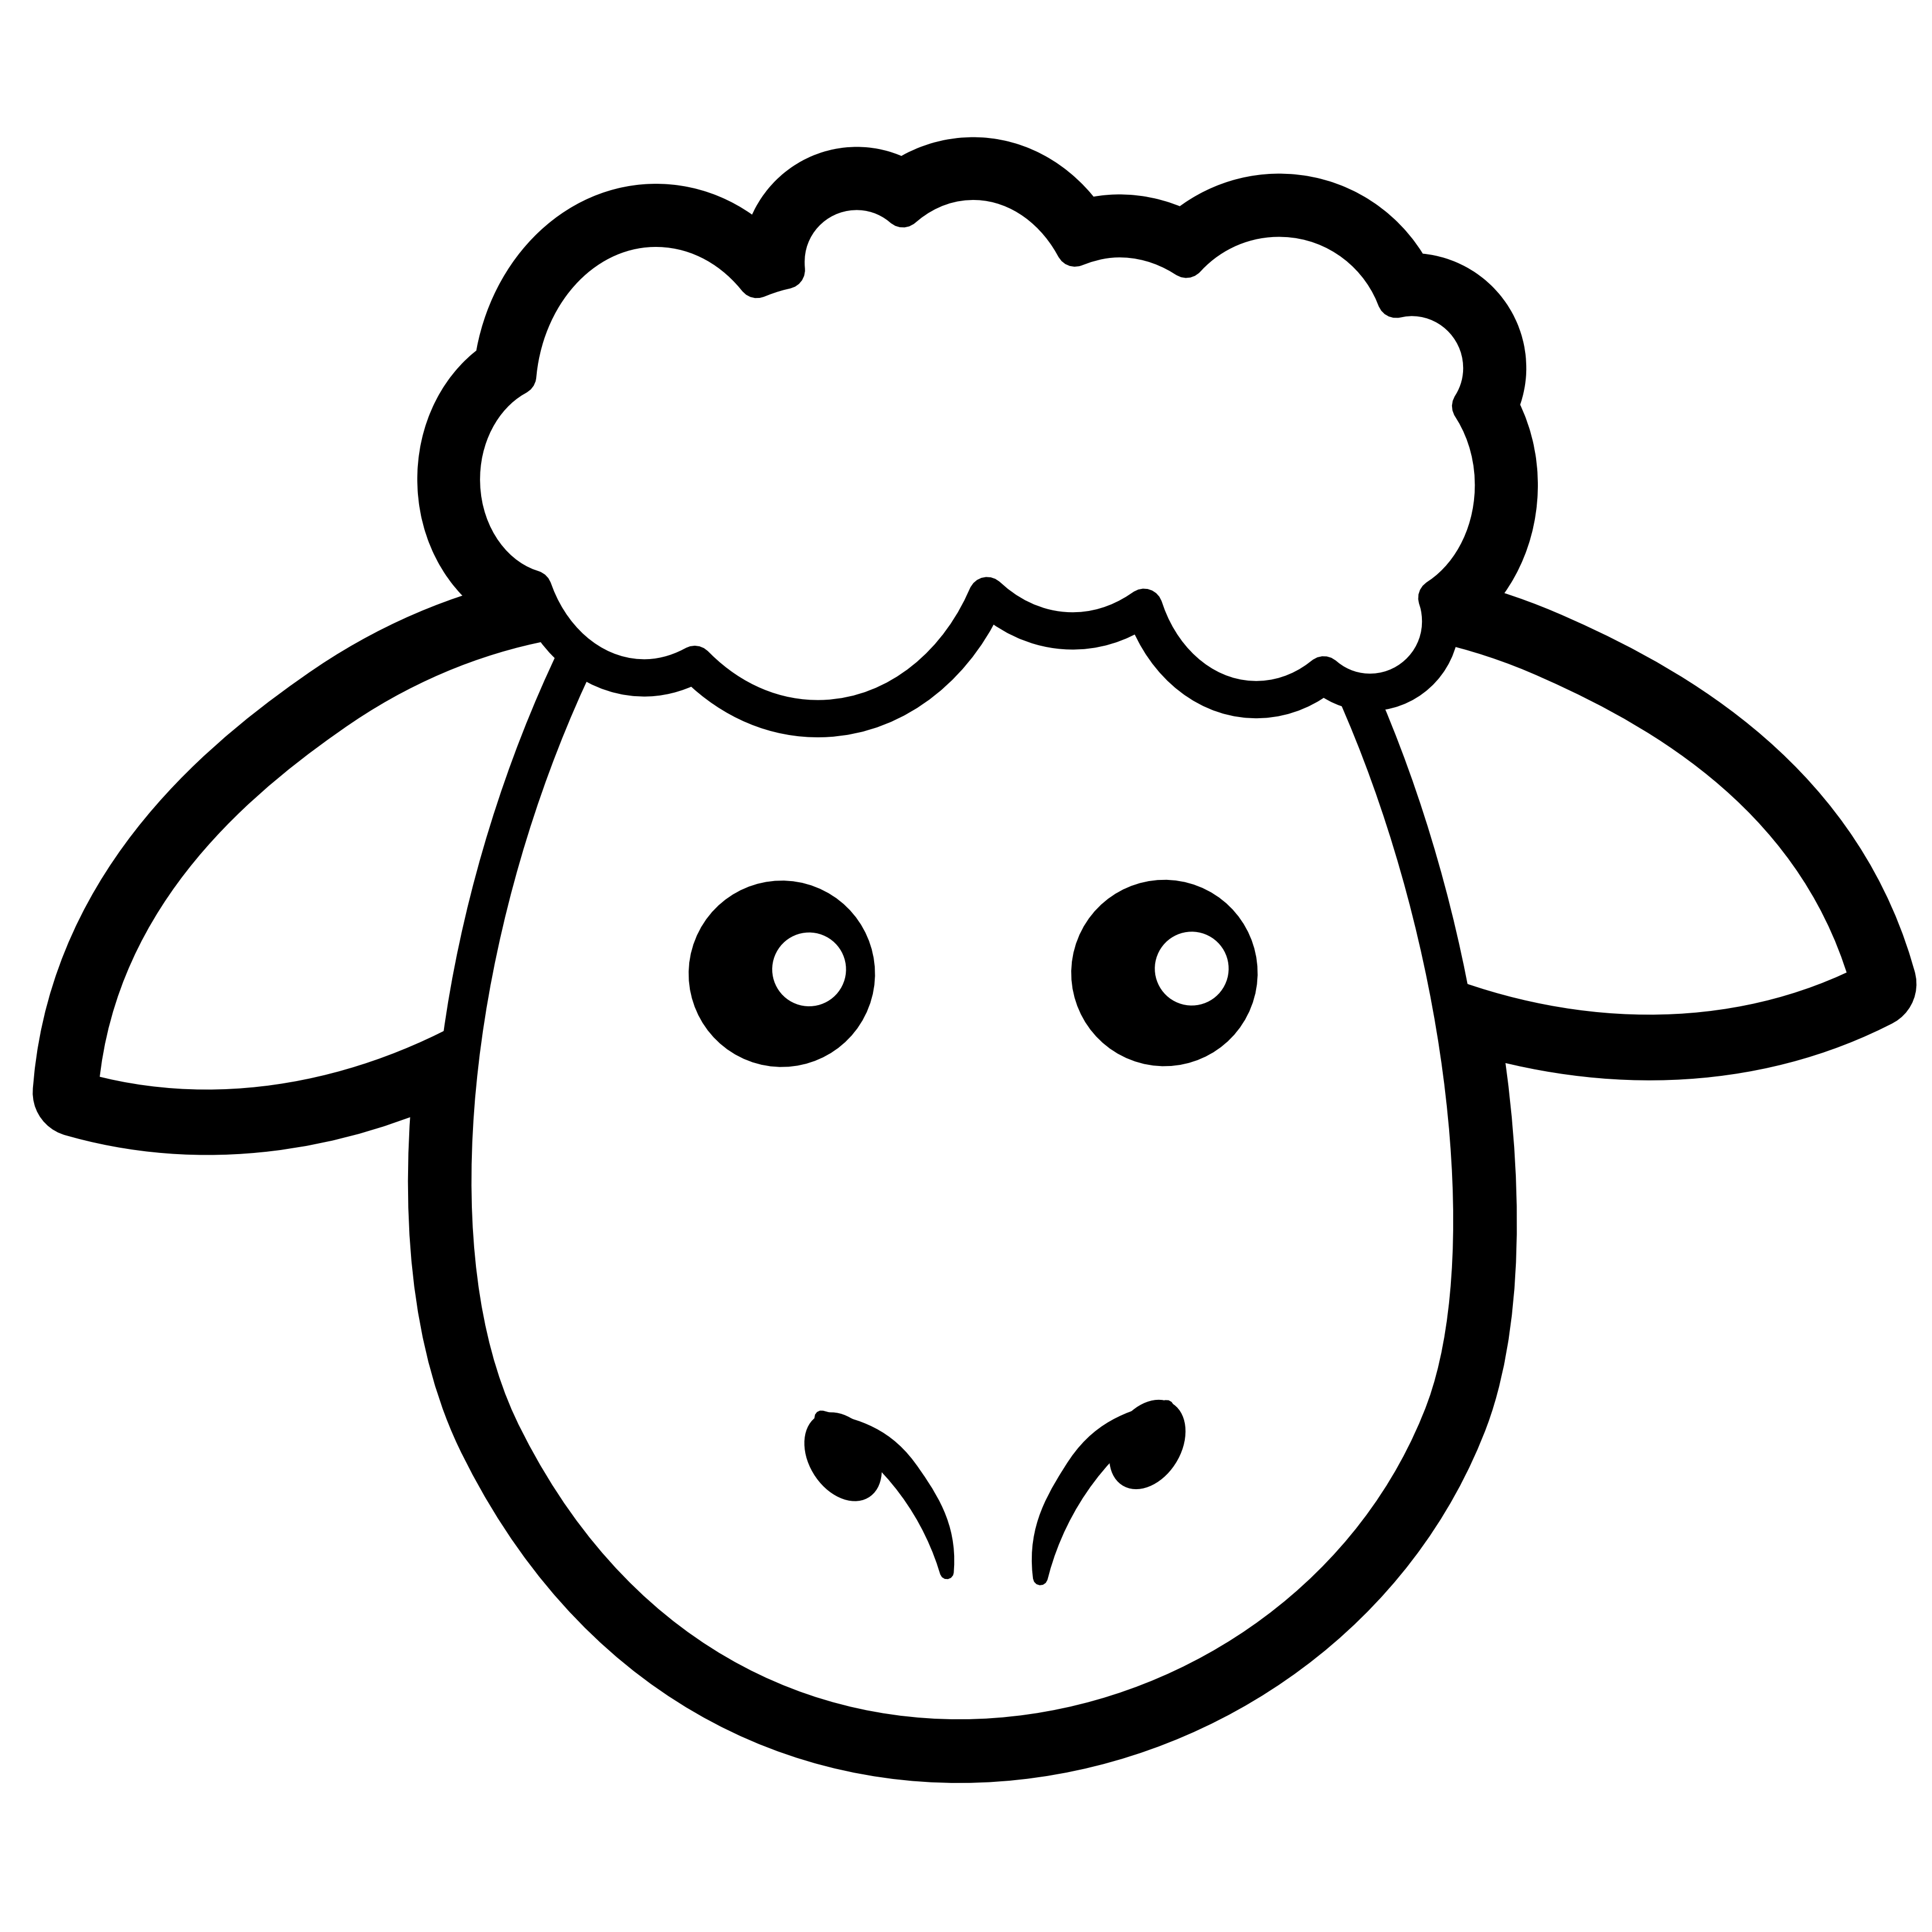 Black face sheep clipart.